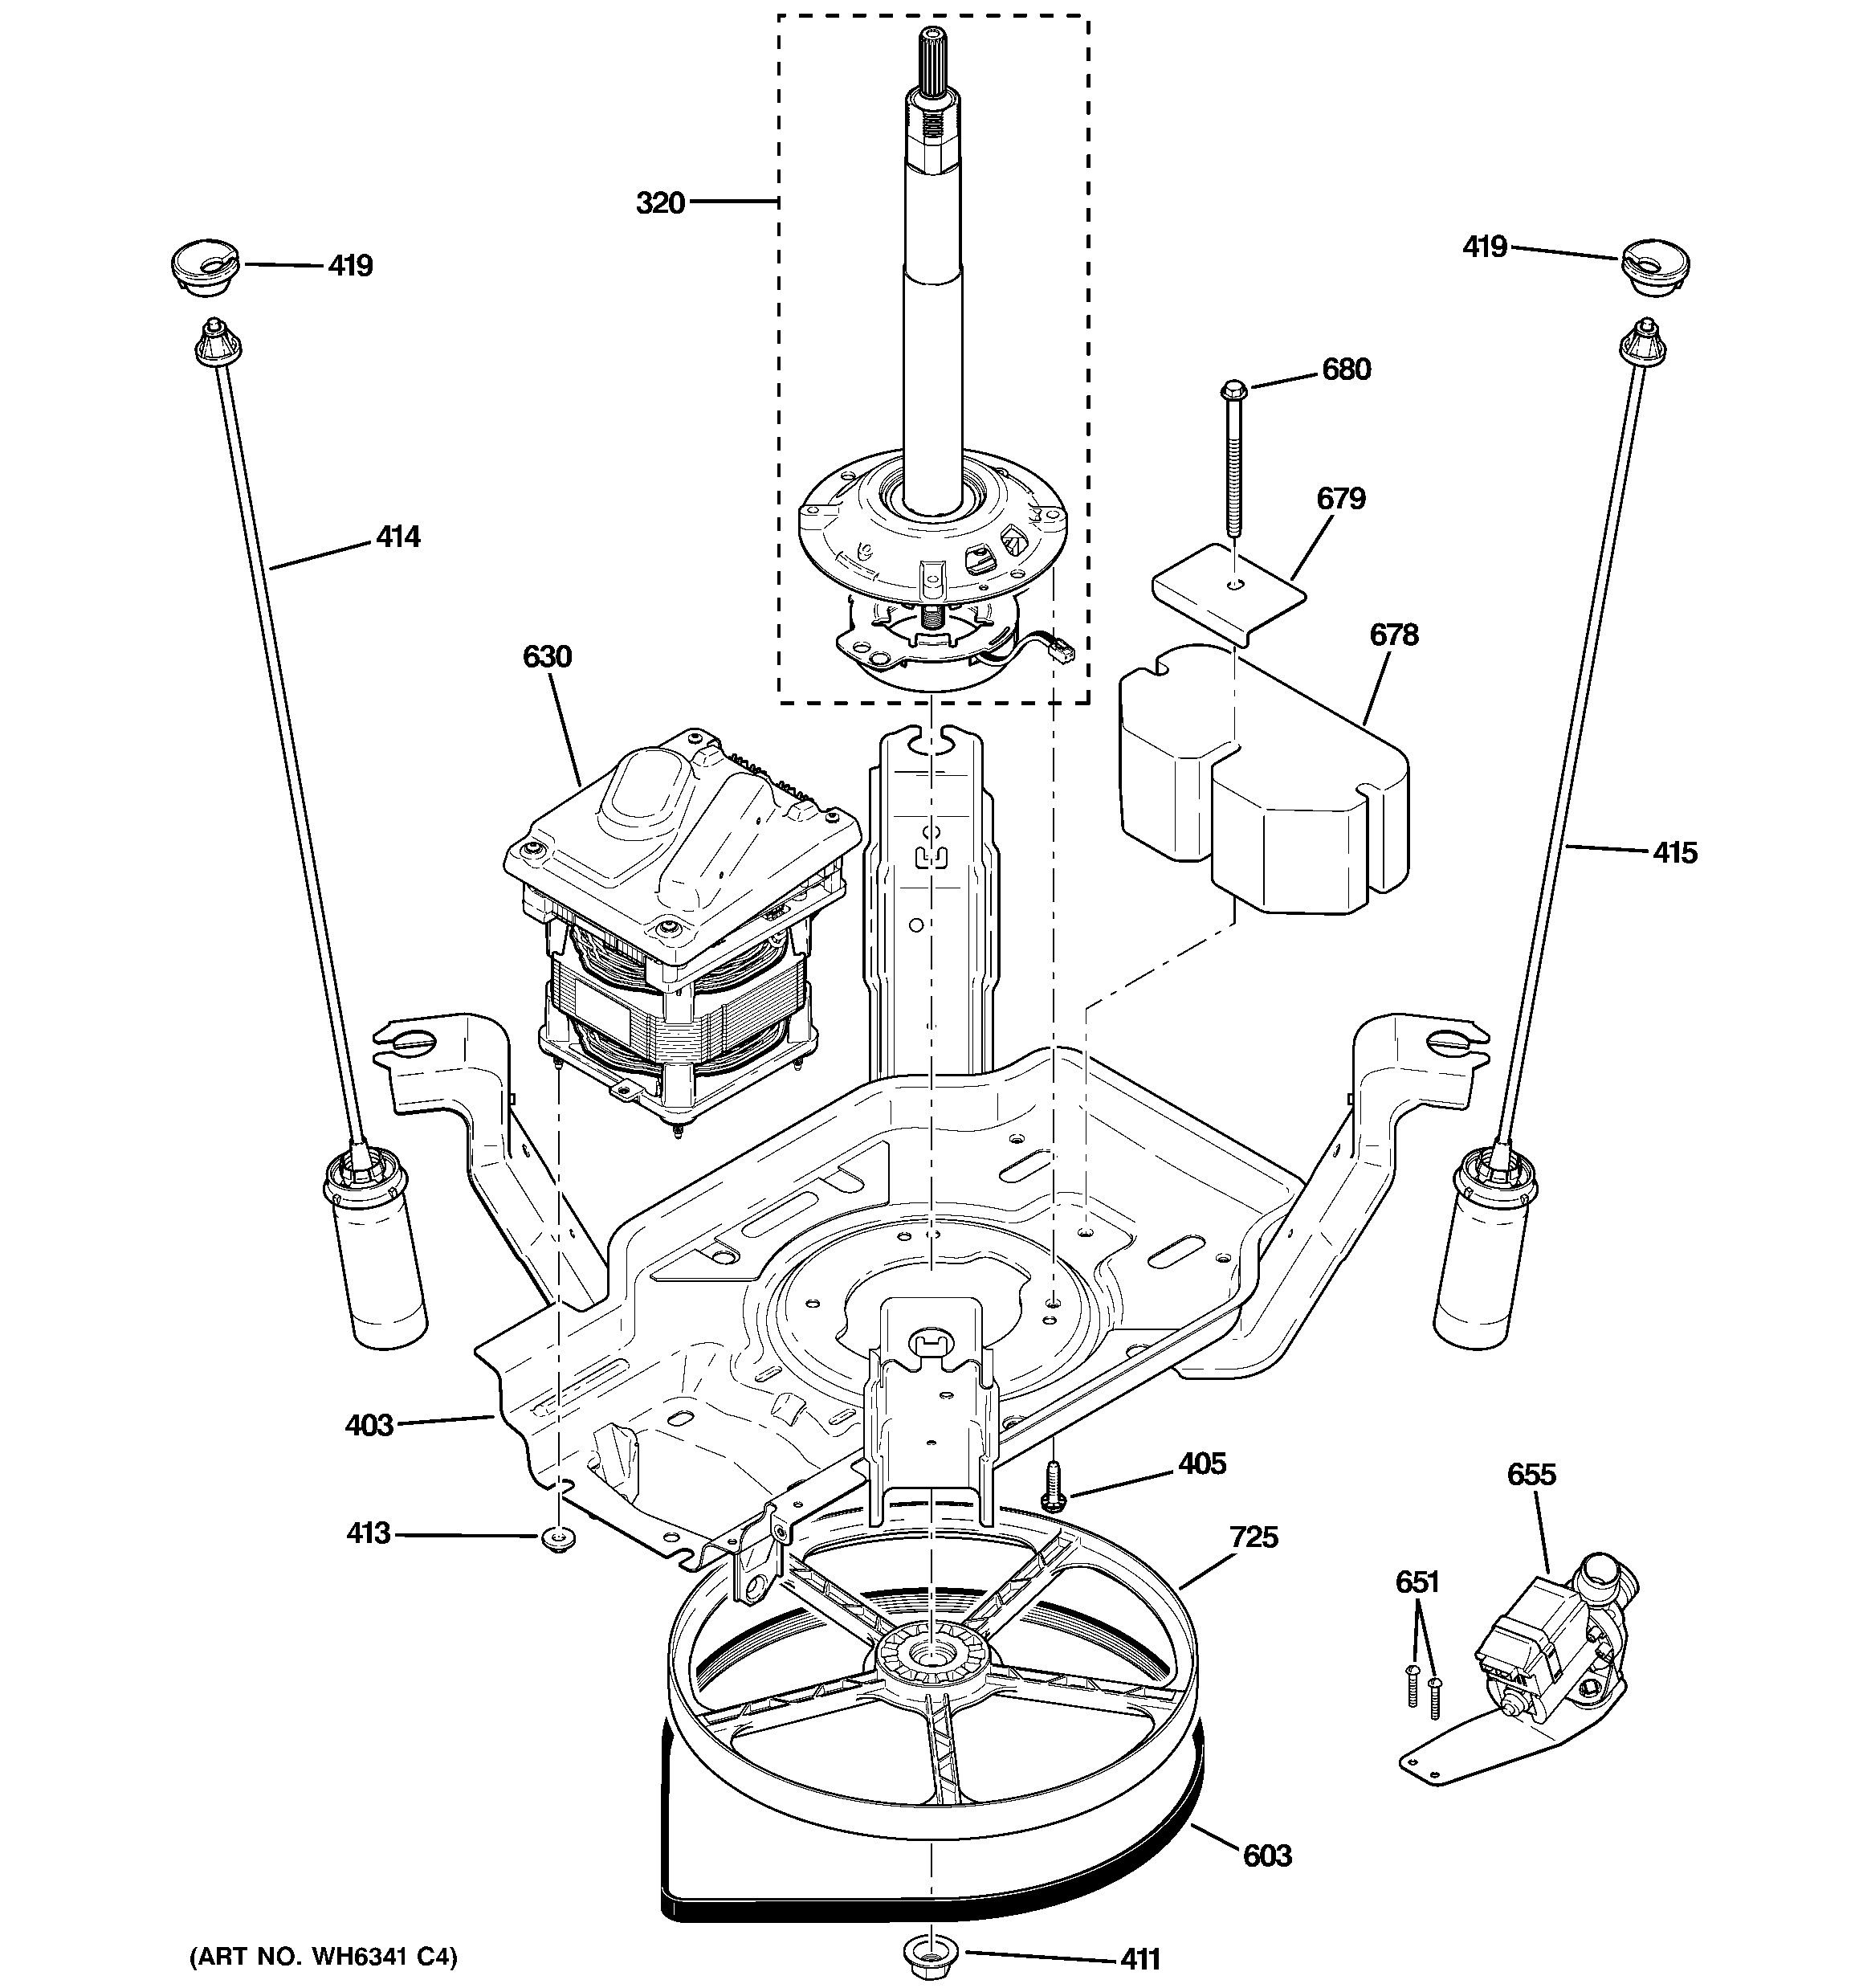 Clutch Components Diagram Ge Washer Parts Model Ghwp1000m2ww Of Clutch Components Diagram